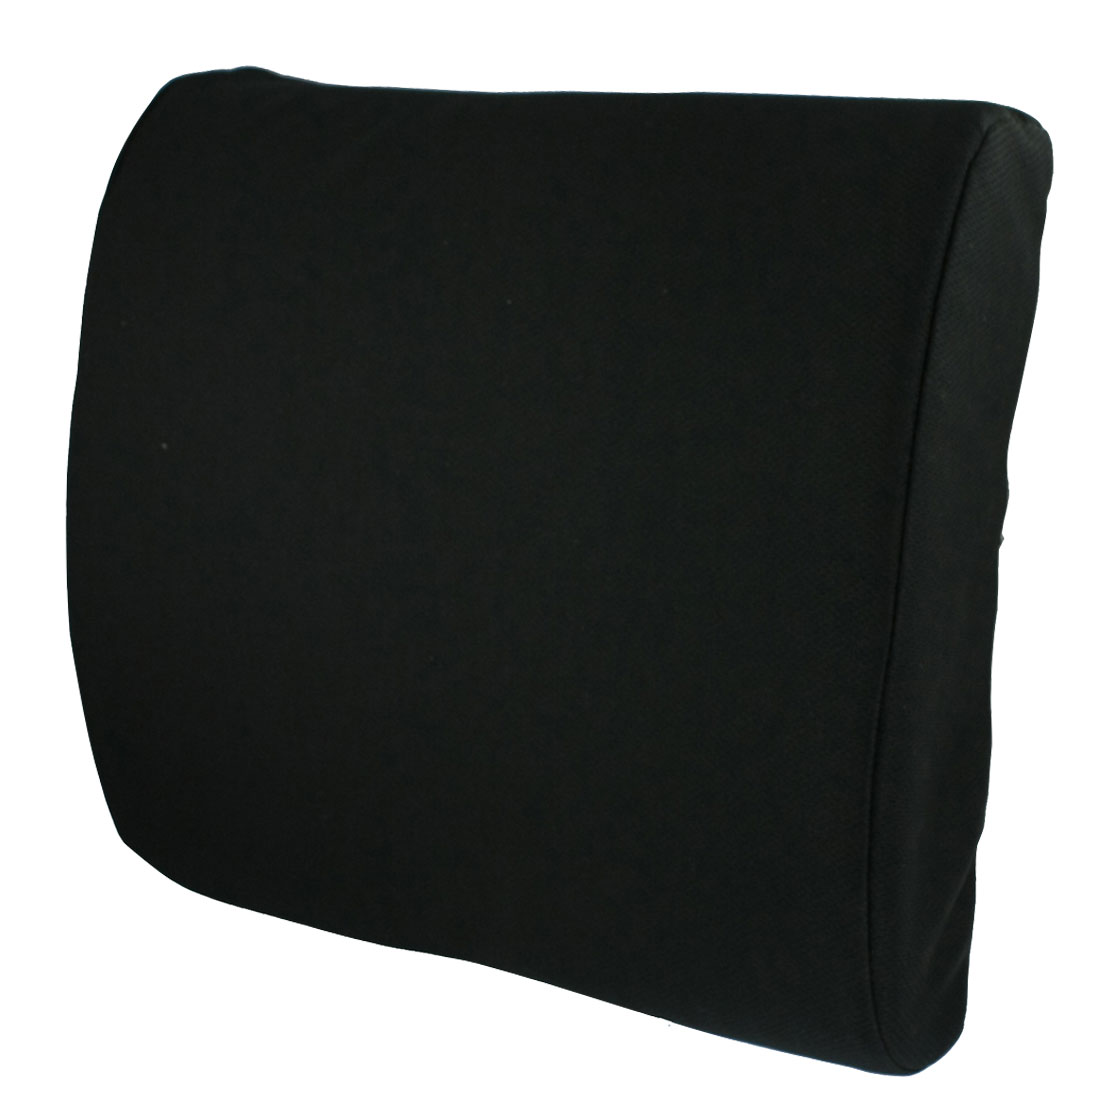 Car Black Padded Lumbar Back Support Rest Pillow Cushion